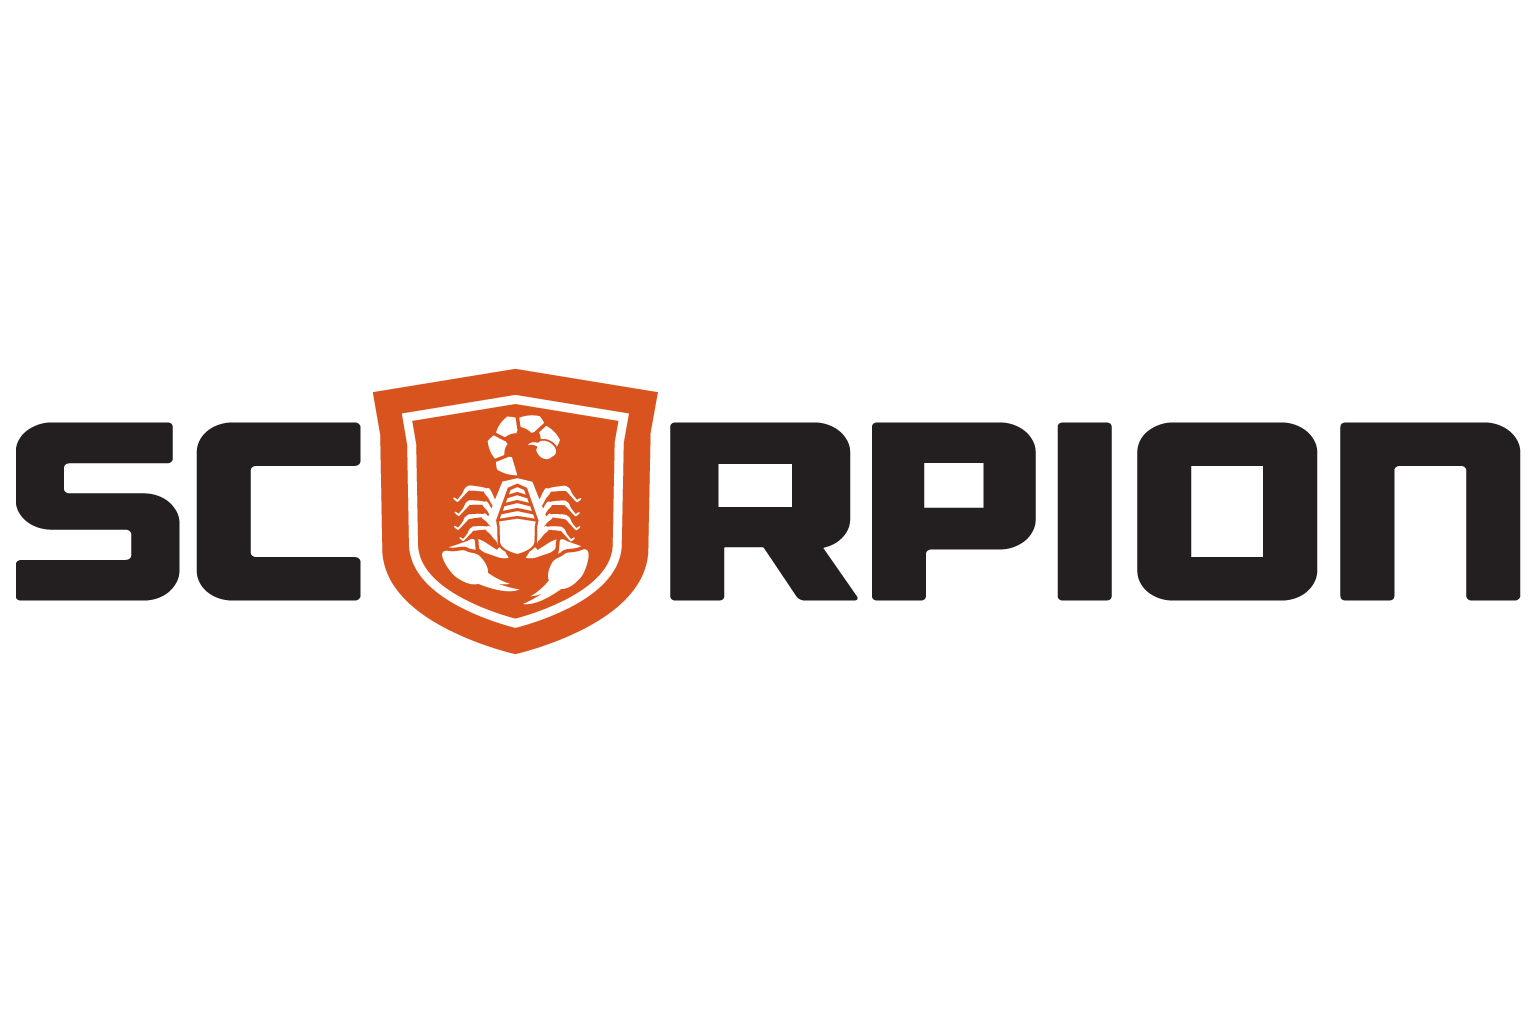 Scorpion Coatings